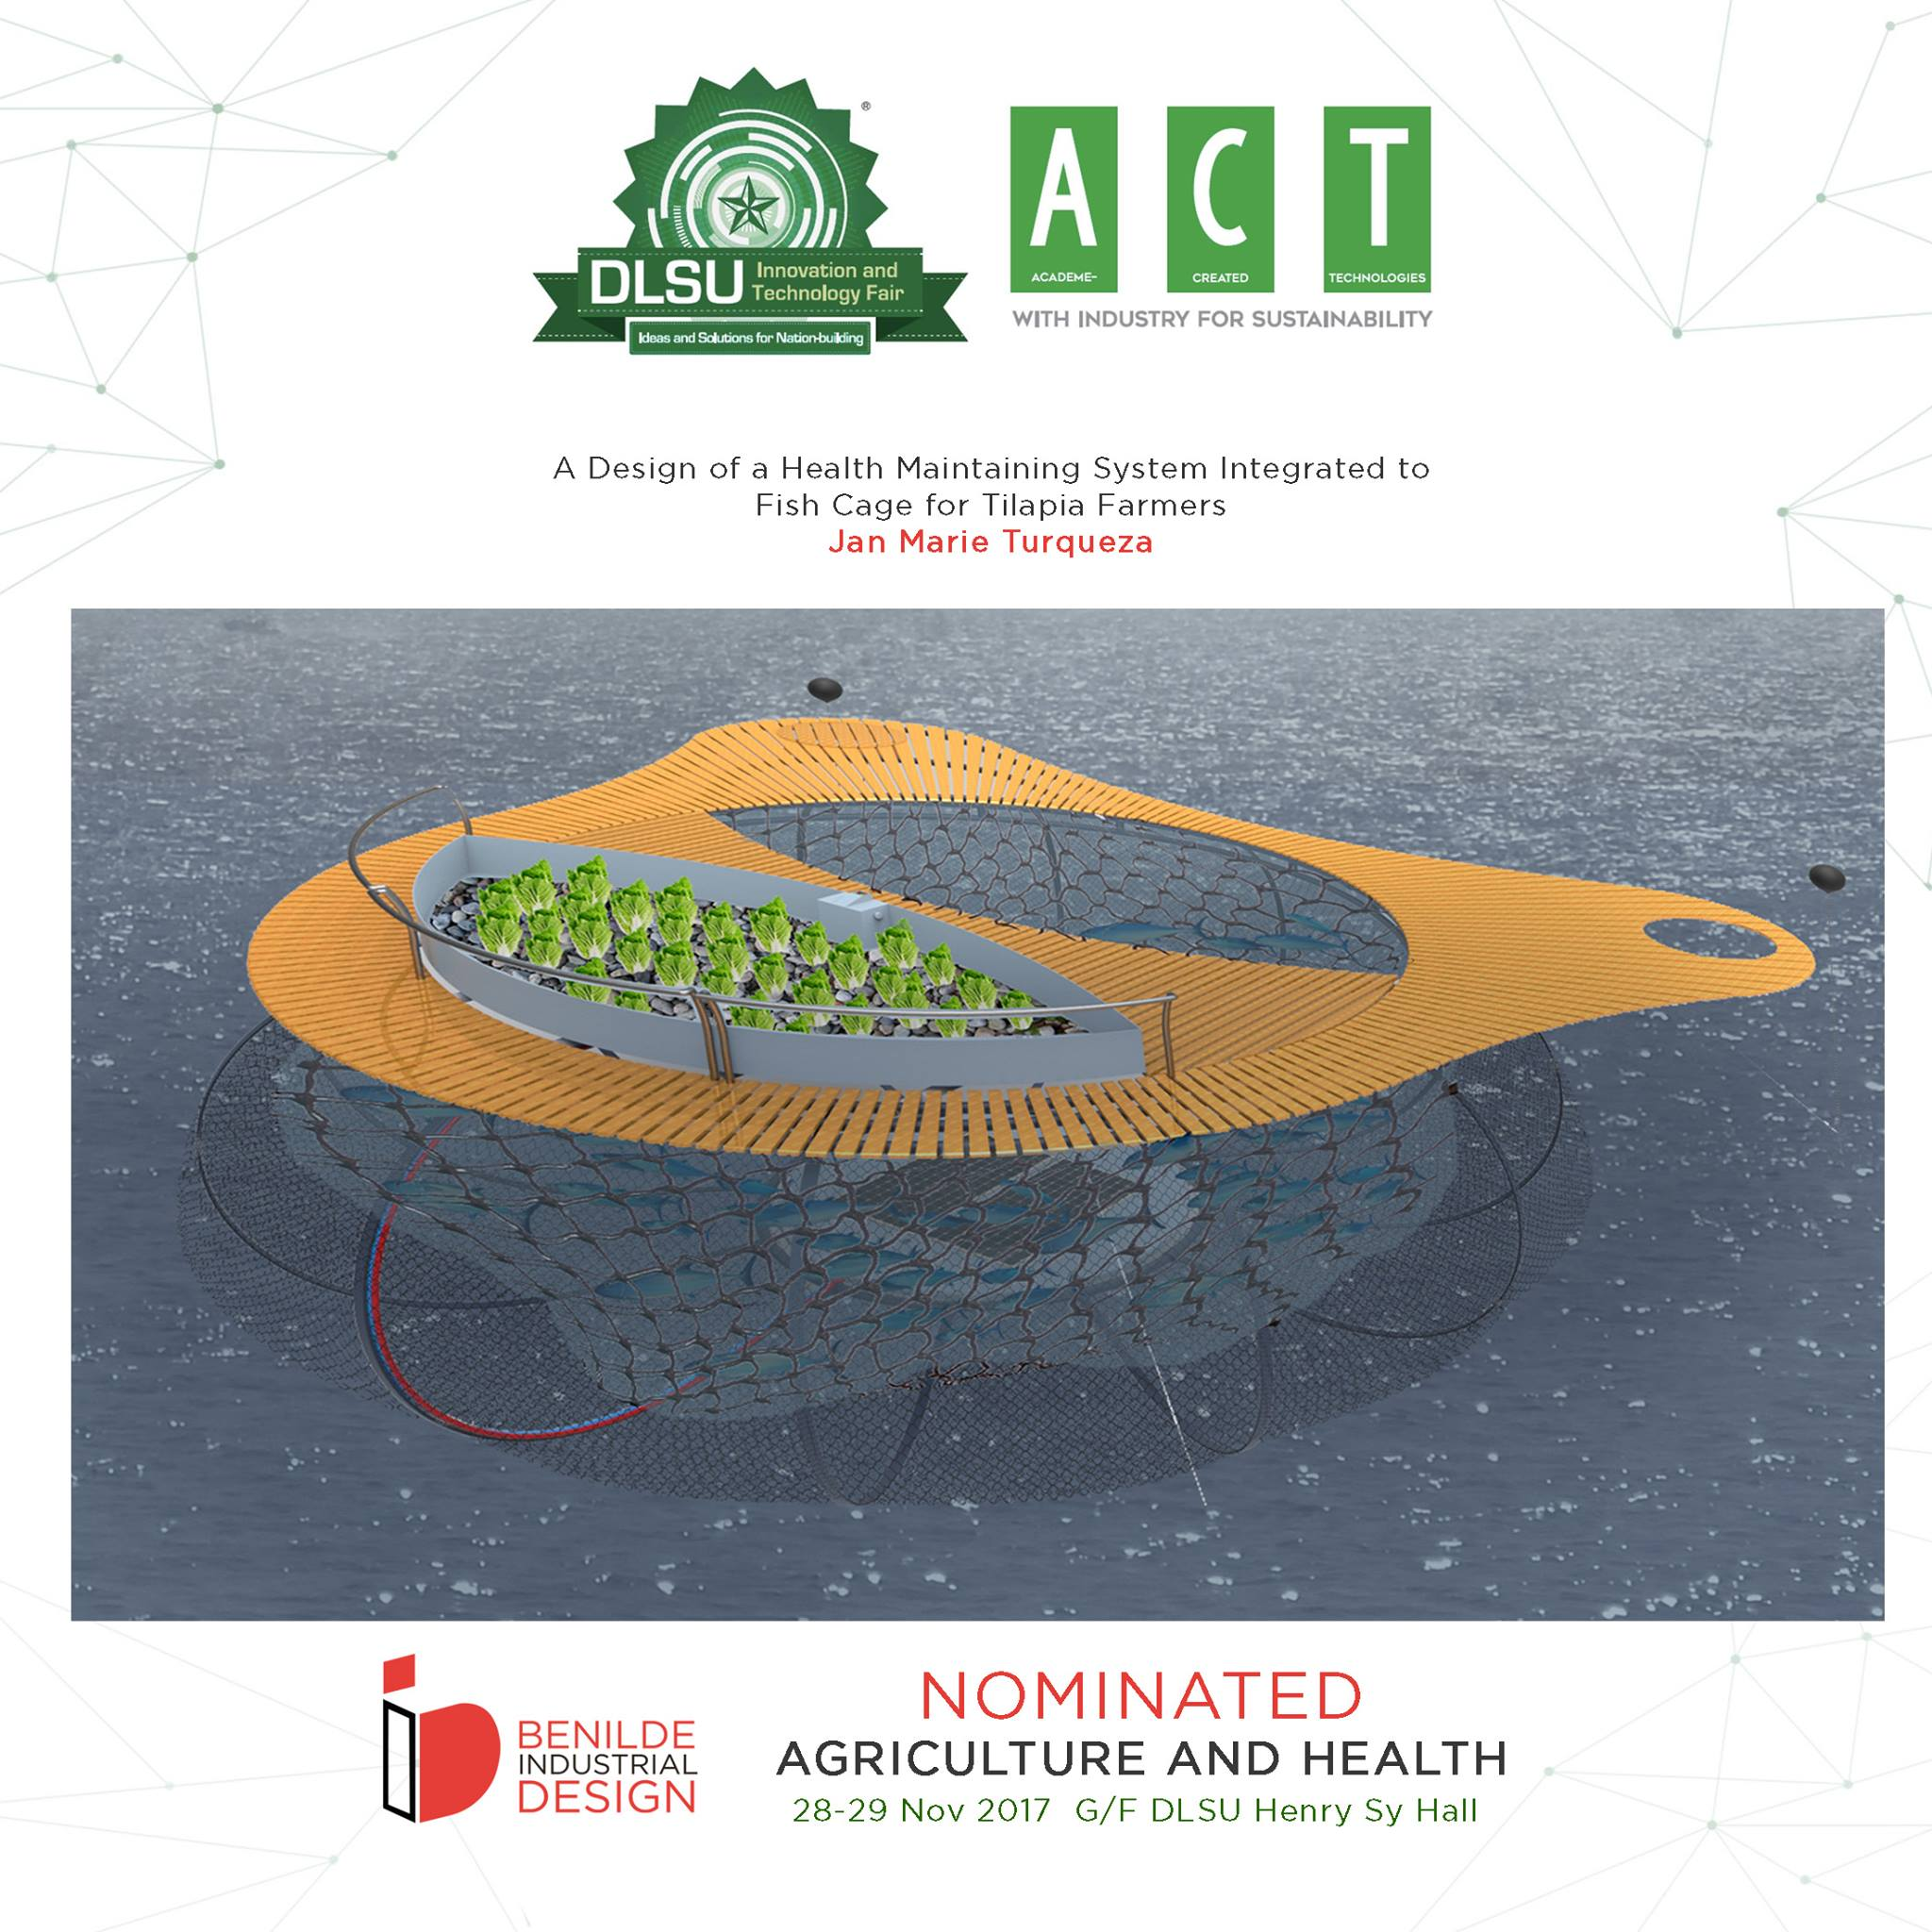 10_Agriculture and Health 2017 a